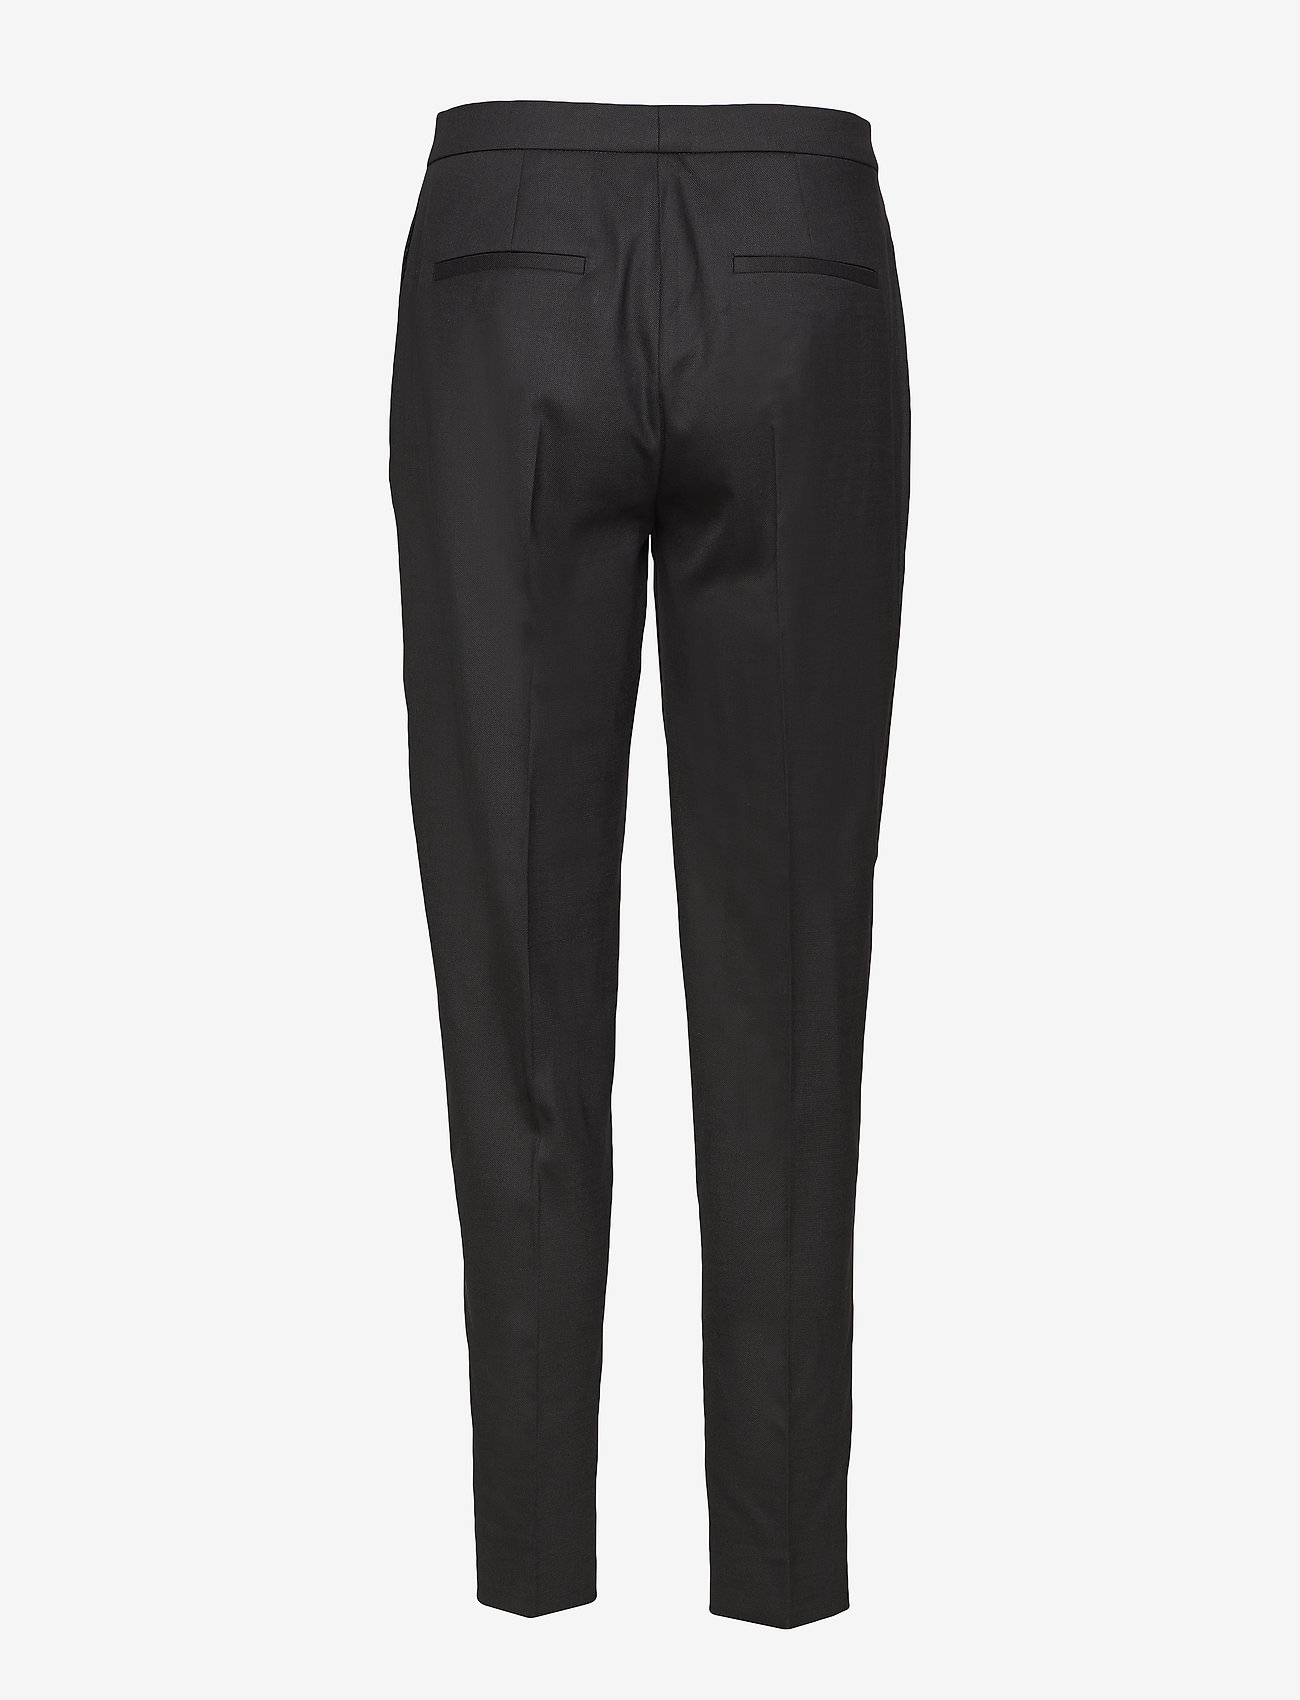 Dagmar Harriet - Trousers BLACK